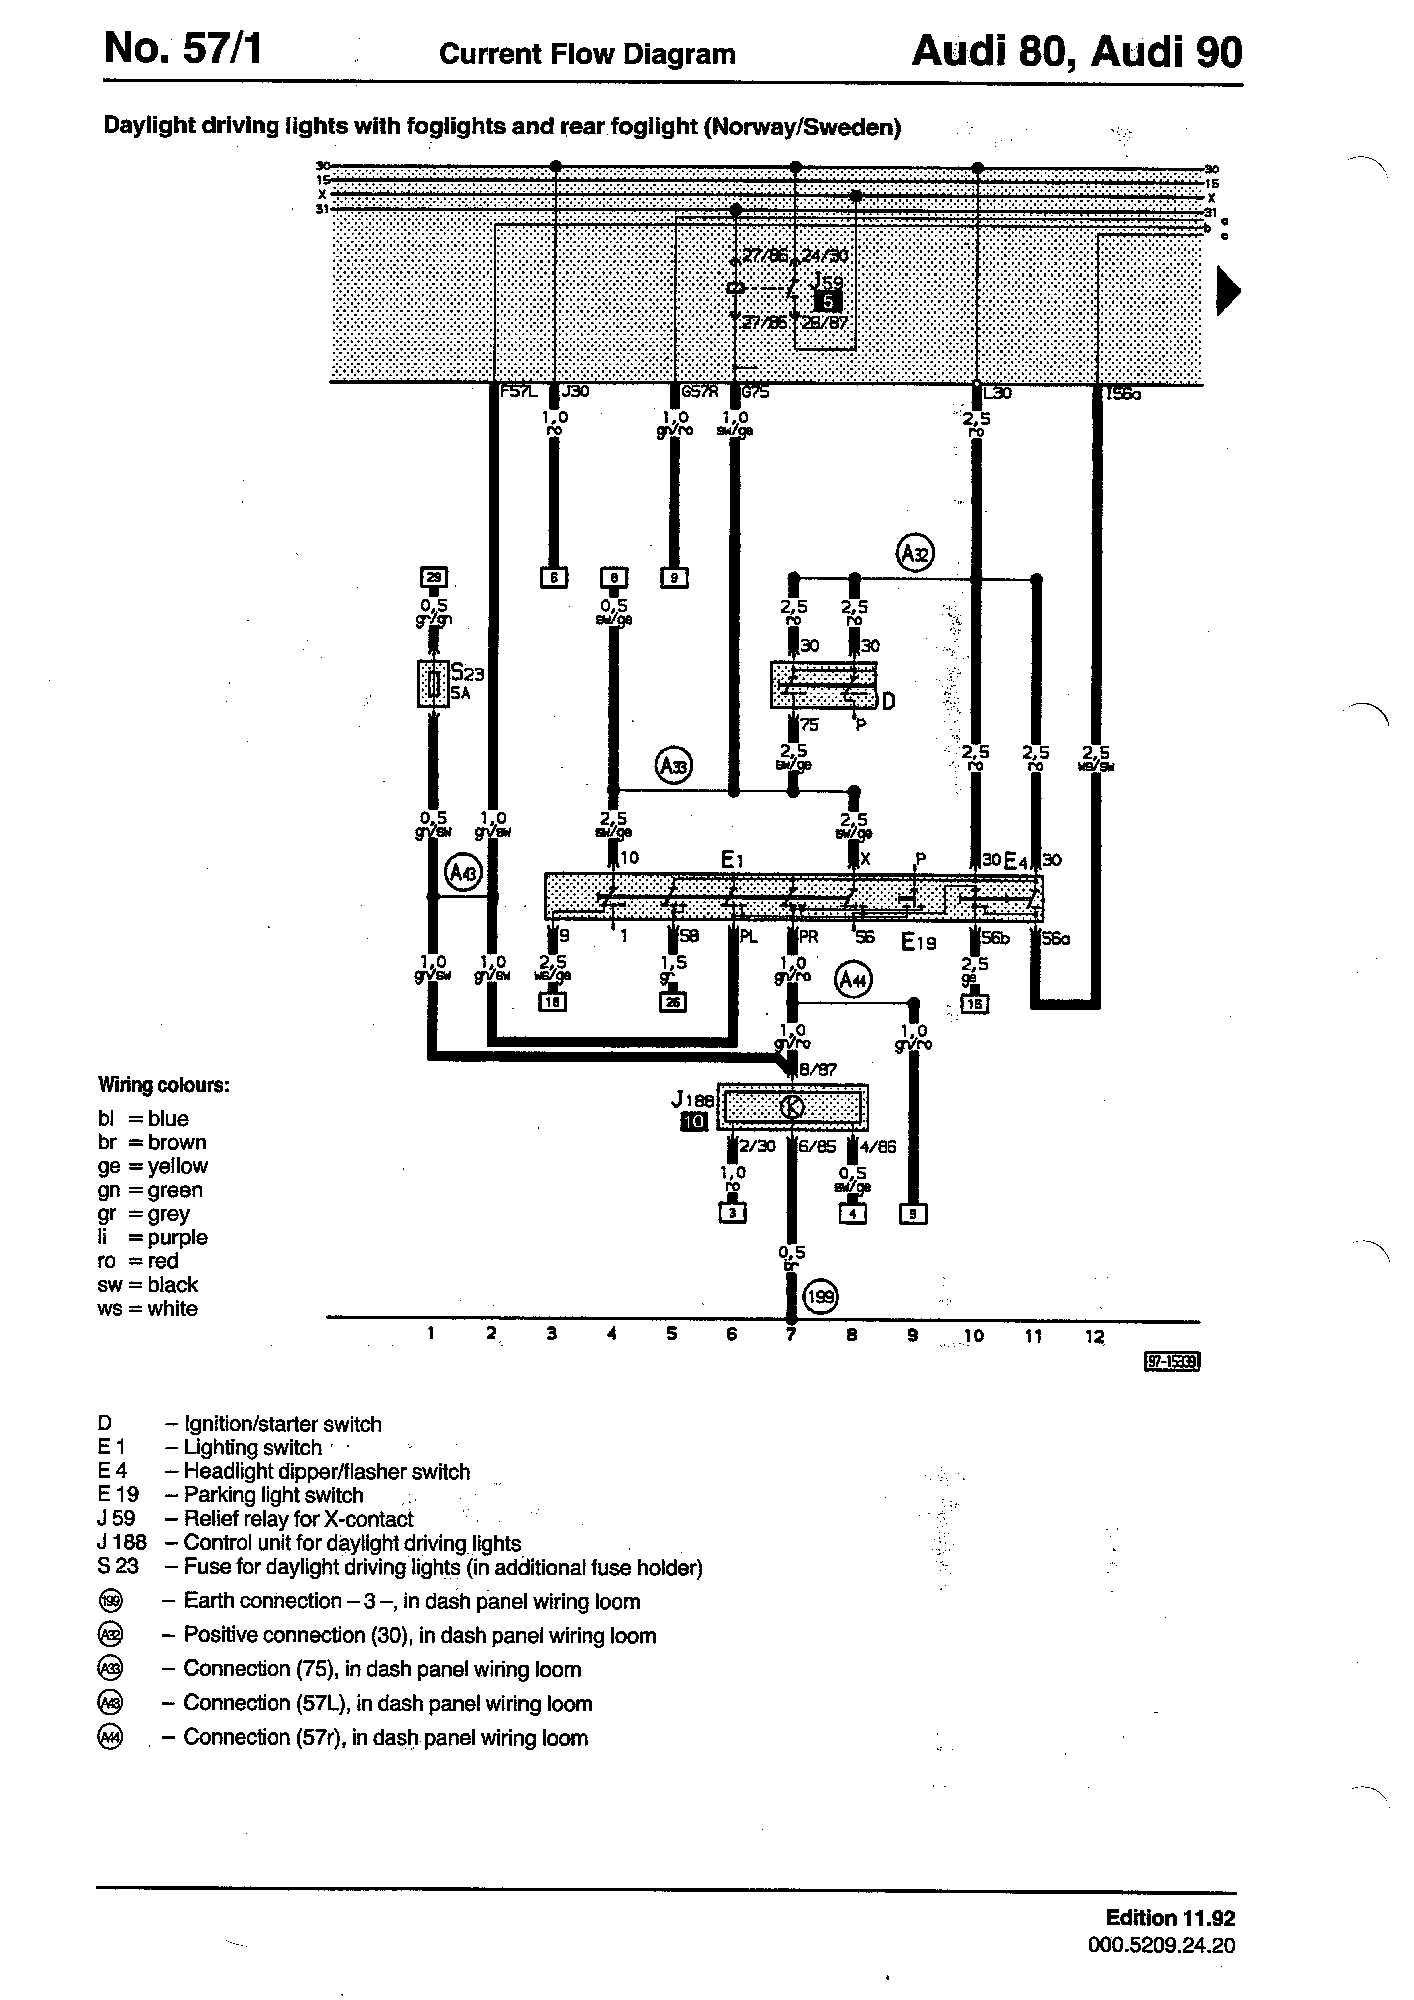 Wiring Diagrams Component Lookup Regulator Diagram On Haynes Repair Manuals Parking Light Switch E19